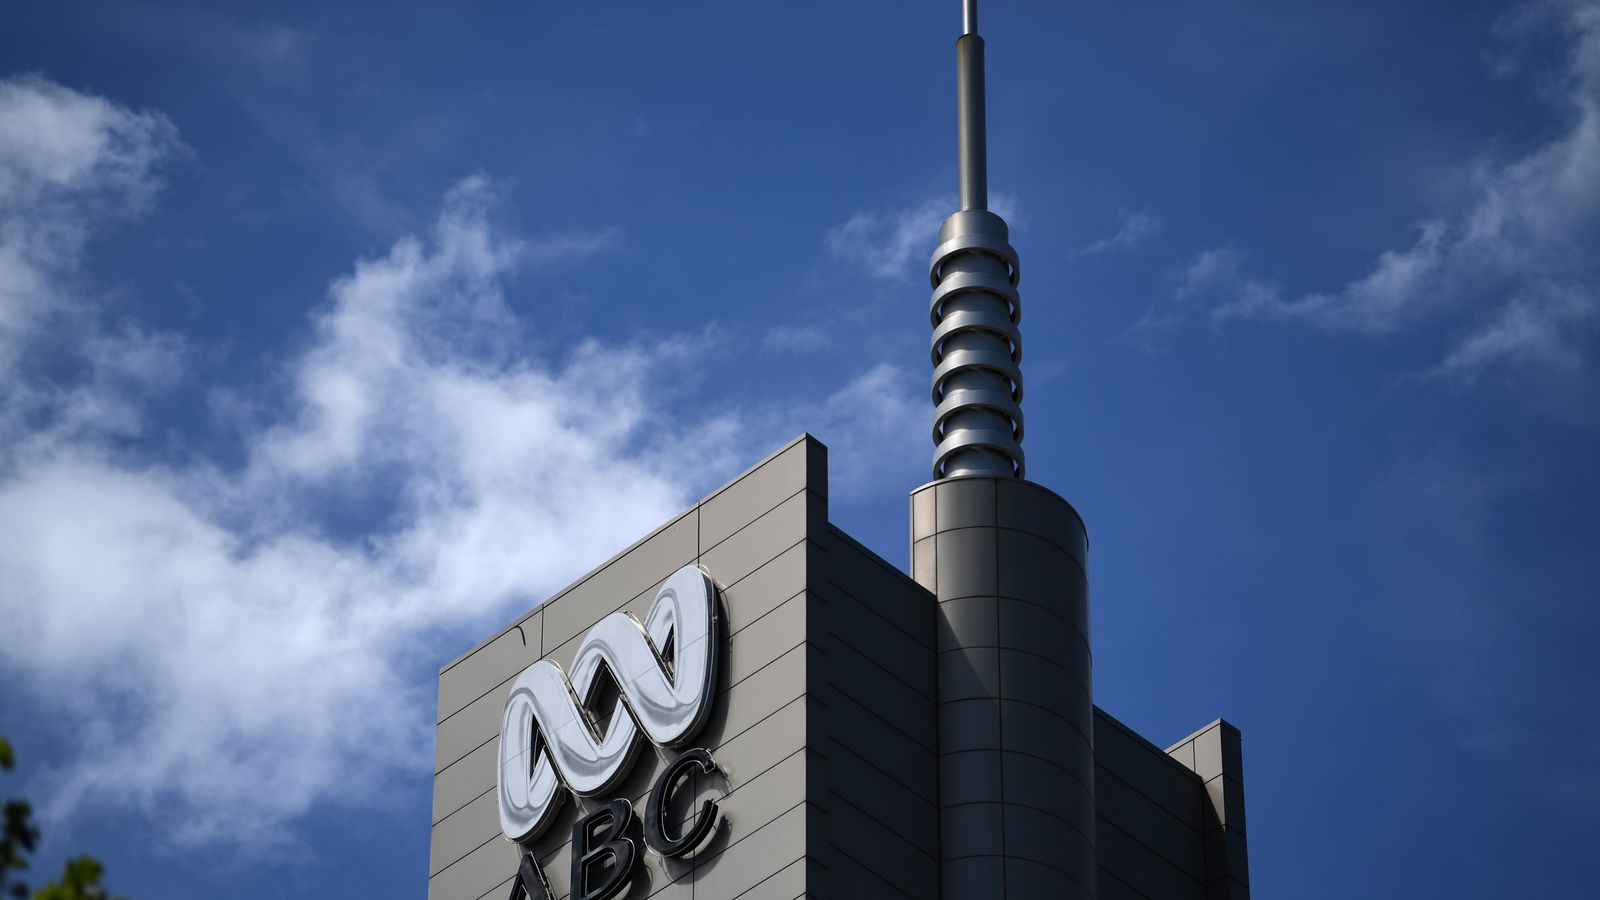 abc news australia - photo #46